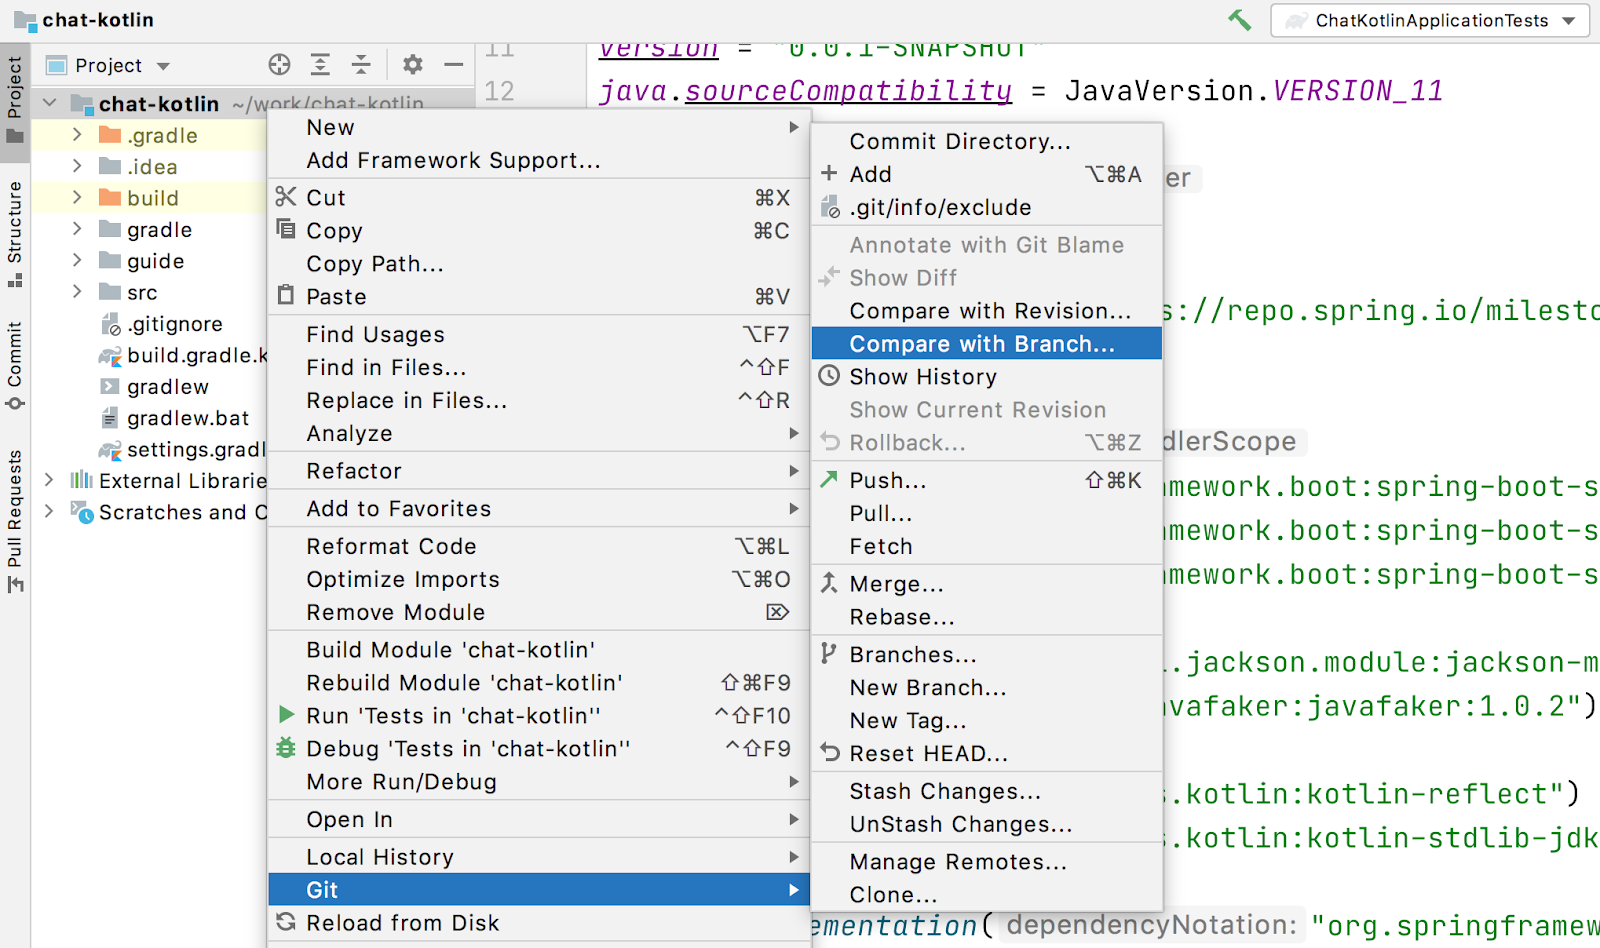 intellij git compare with branch